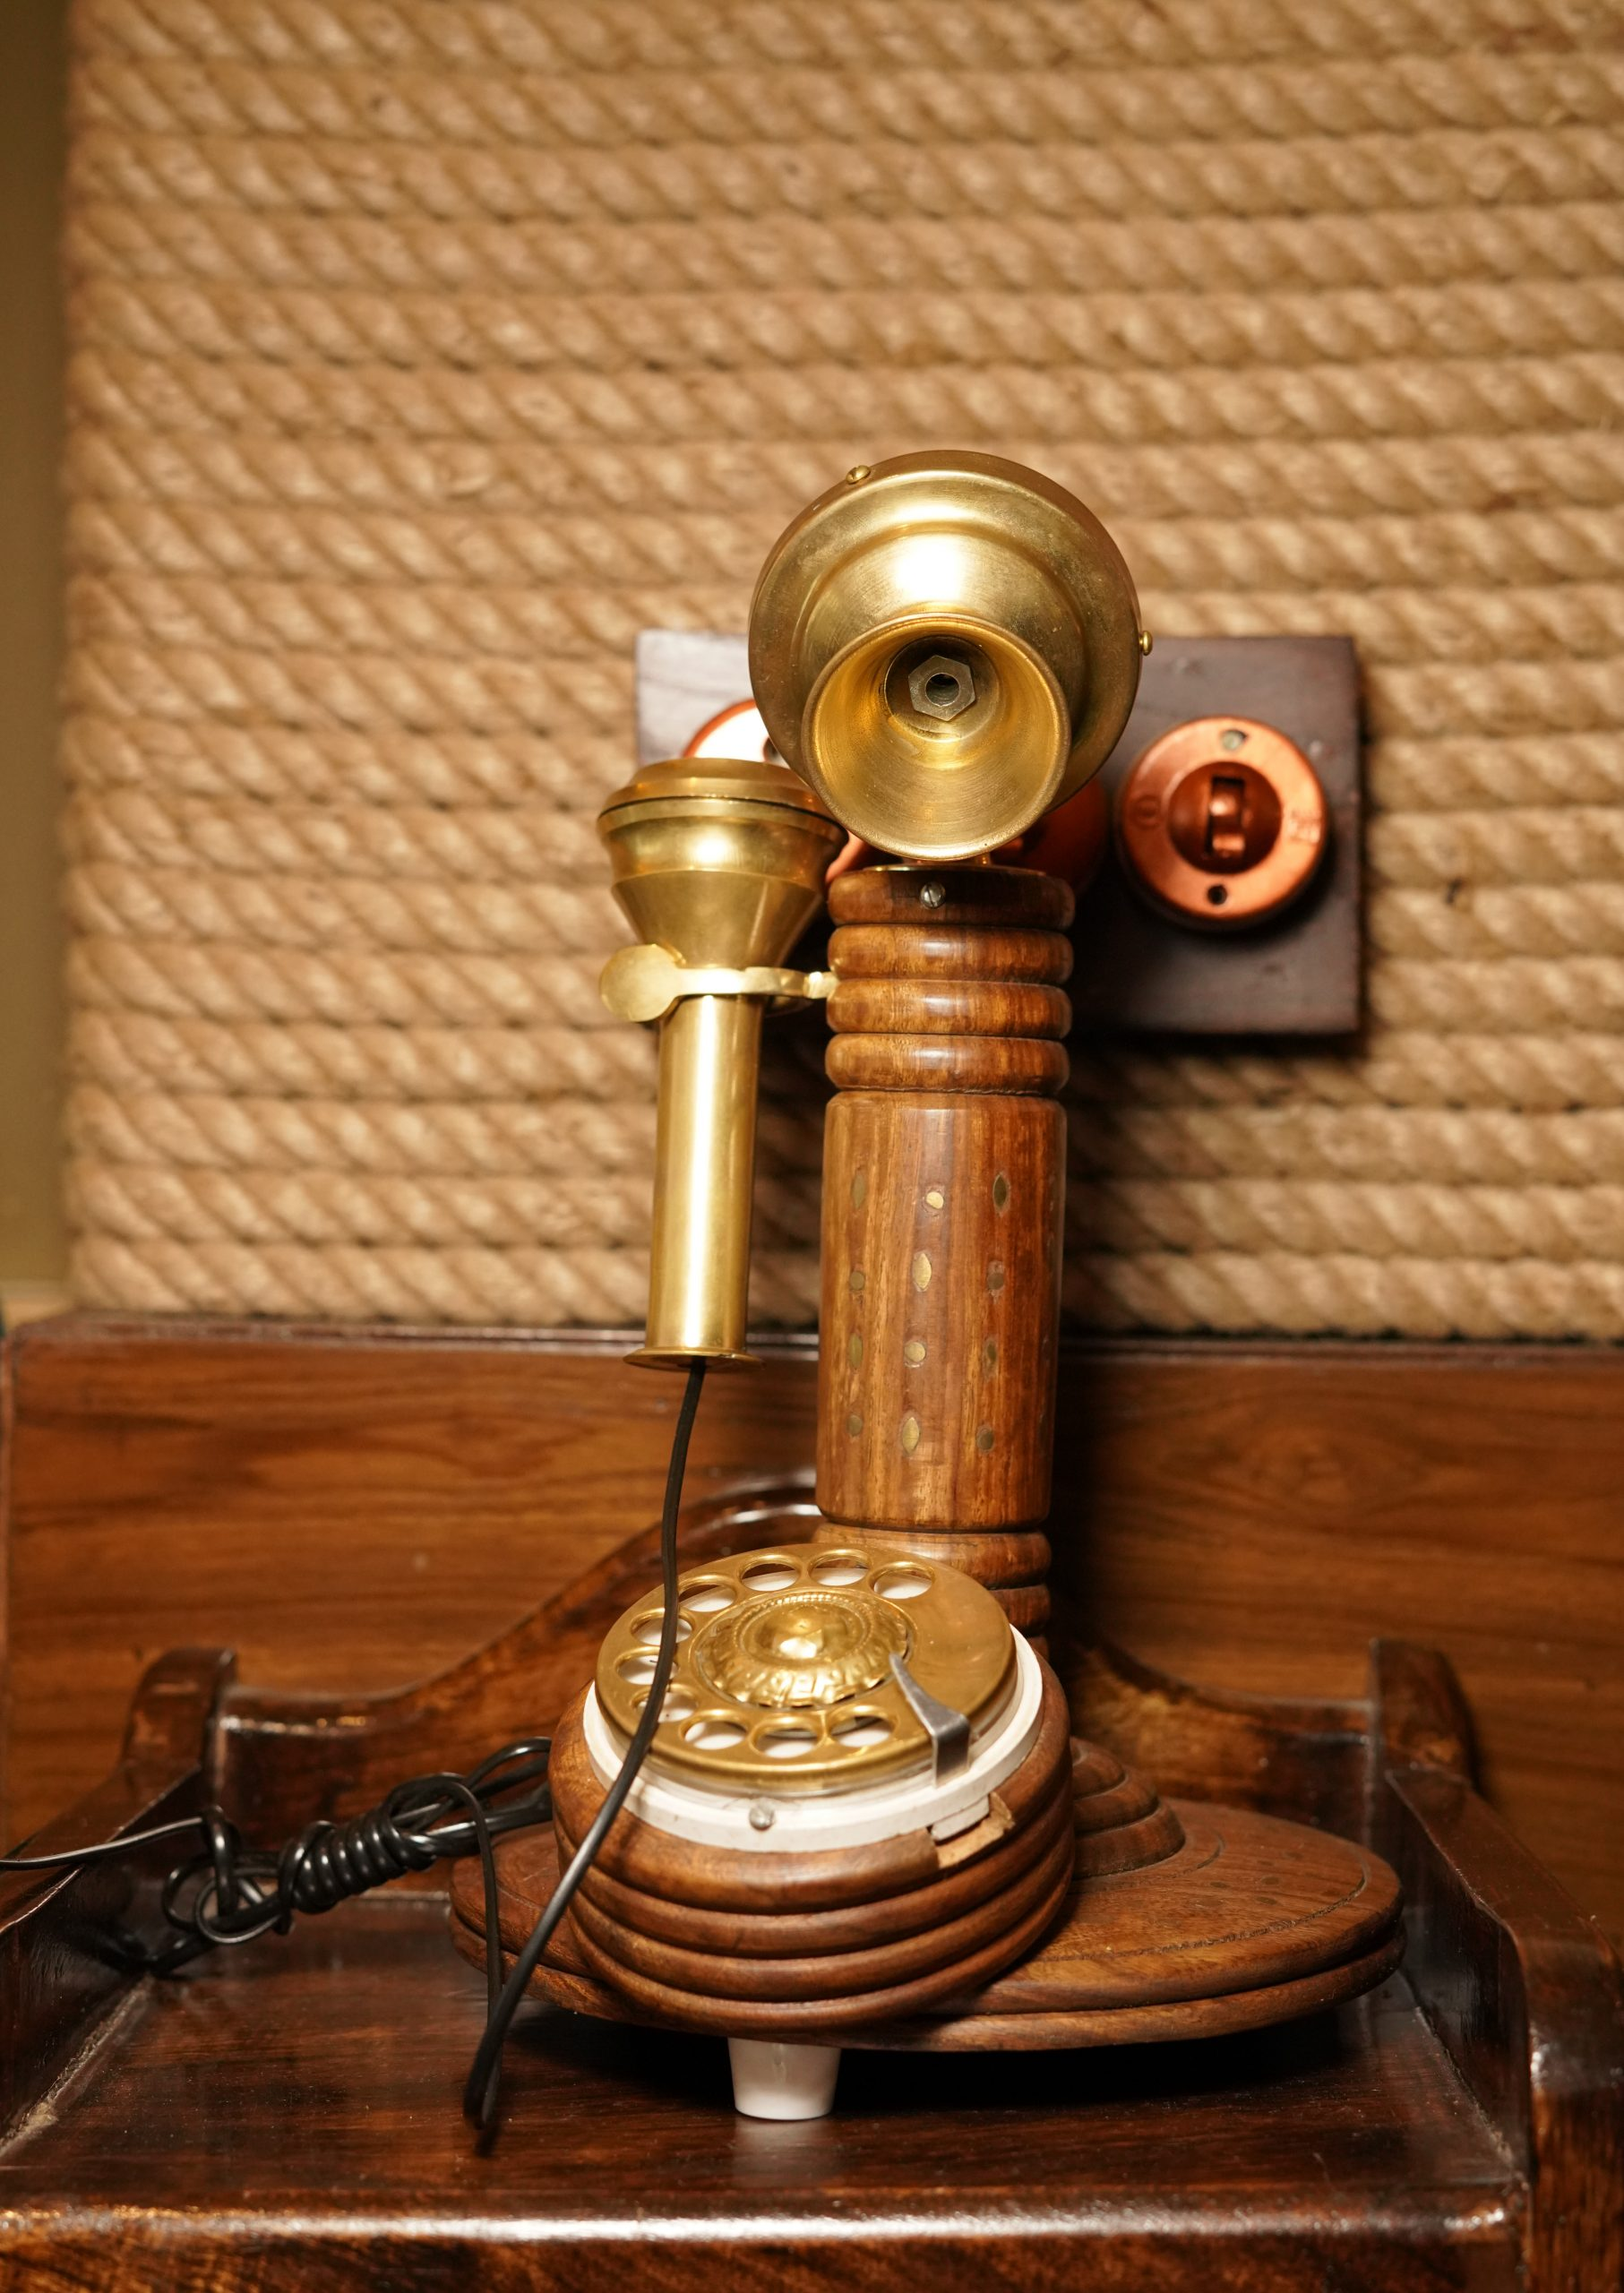 Antique telephone on a table.